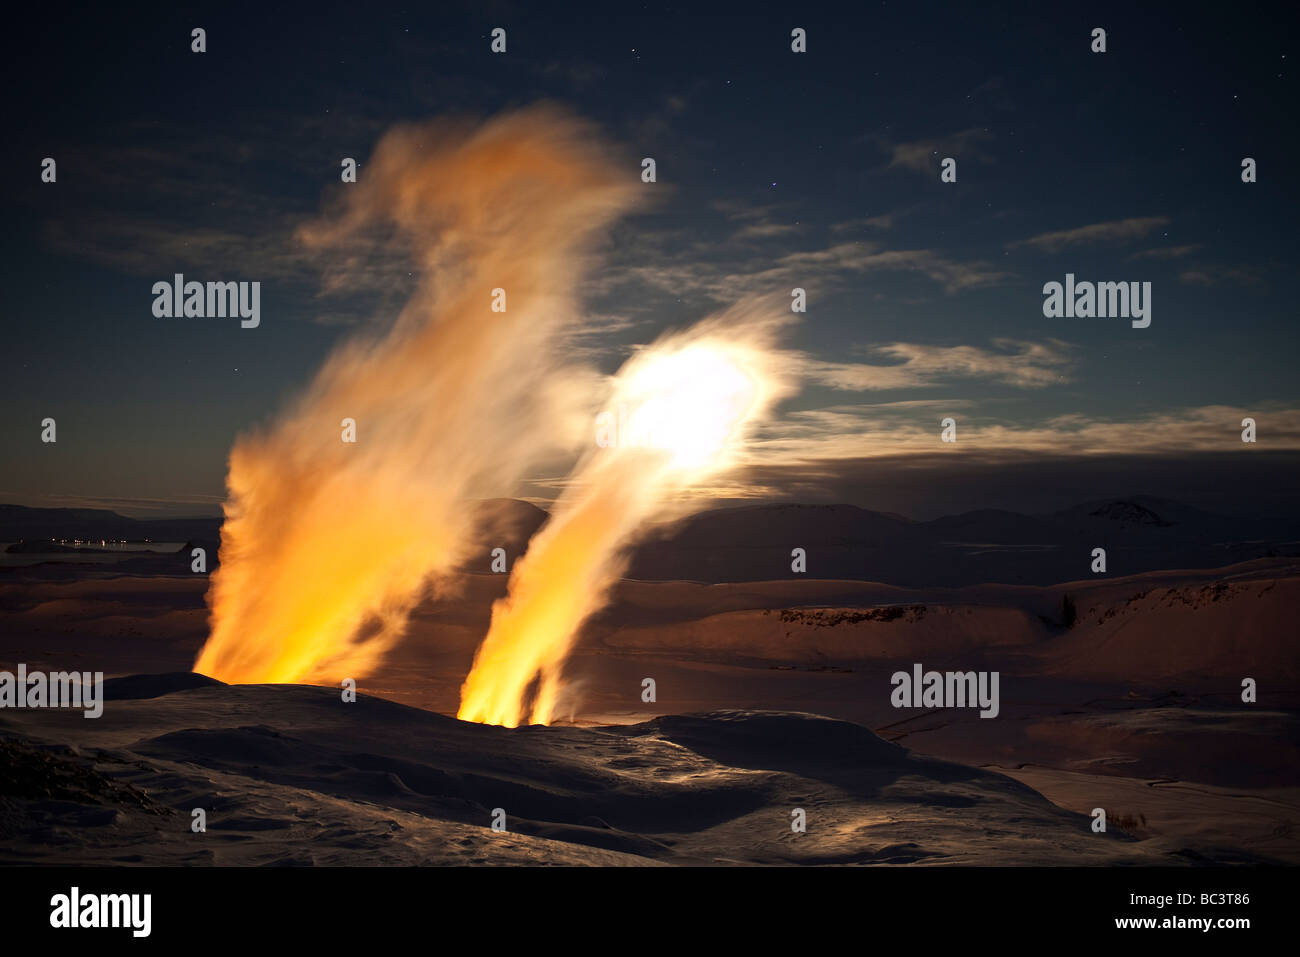 Winter sunset with Steam rising from bore holes at Nesjavellir Geothermal Power Plant, Iceland - Stock Image